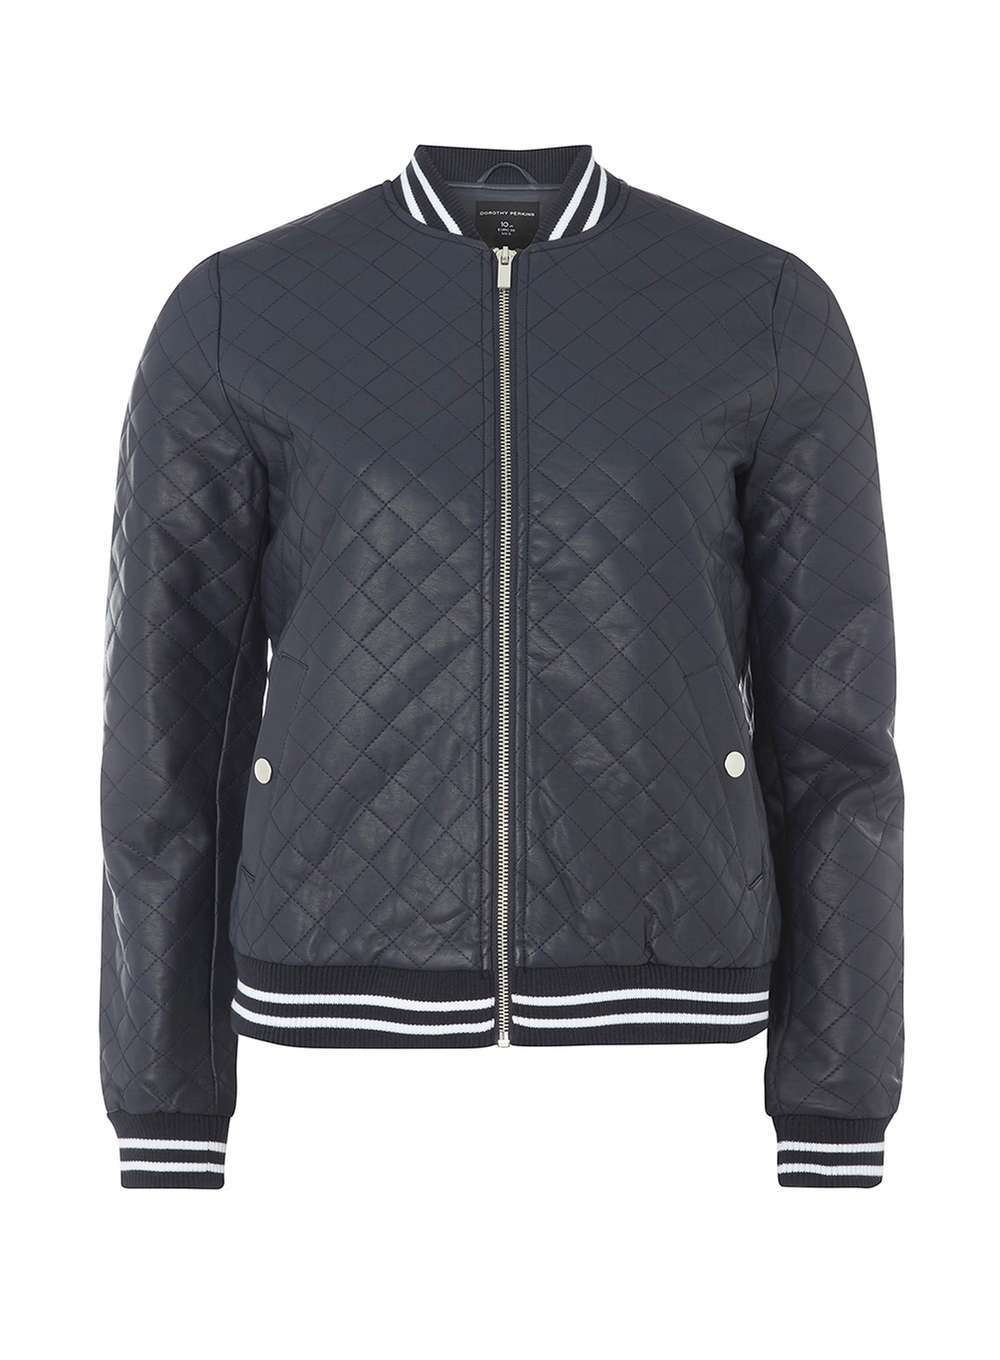 Womens Stripe Rib Faux Leather Bomber Jacket Blue - pattern: plain; collar: round collar/collarless; fit: slim fit; style: bomber; secondary colour: white; predominant colour: navy; occasions: casual; length: standard; fibres: polyester/polyamide - 100%; sleeve length: long sleeve; sleeve style: standard; texture group: leather; collar break: high; pattern type: fabric; multicoloured: multicoloured; wardrobe: basic; season: a/w 2016